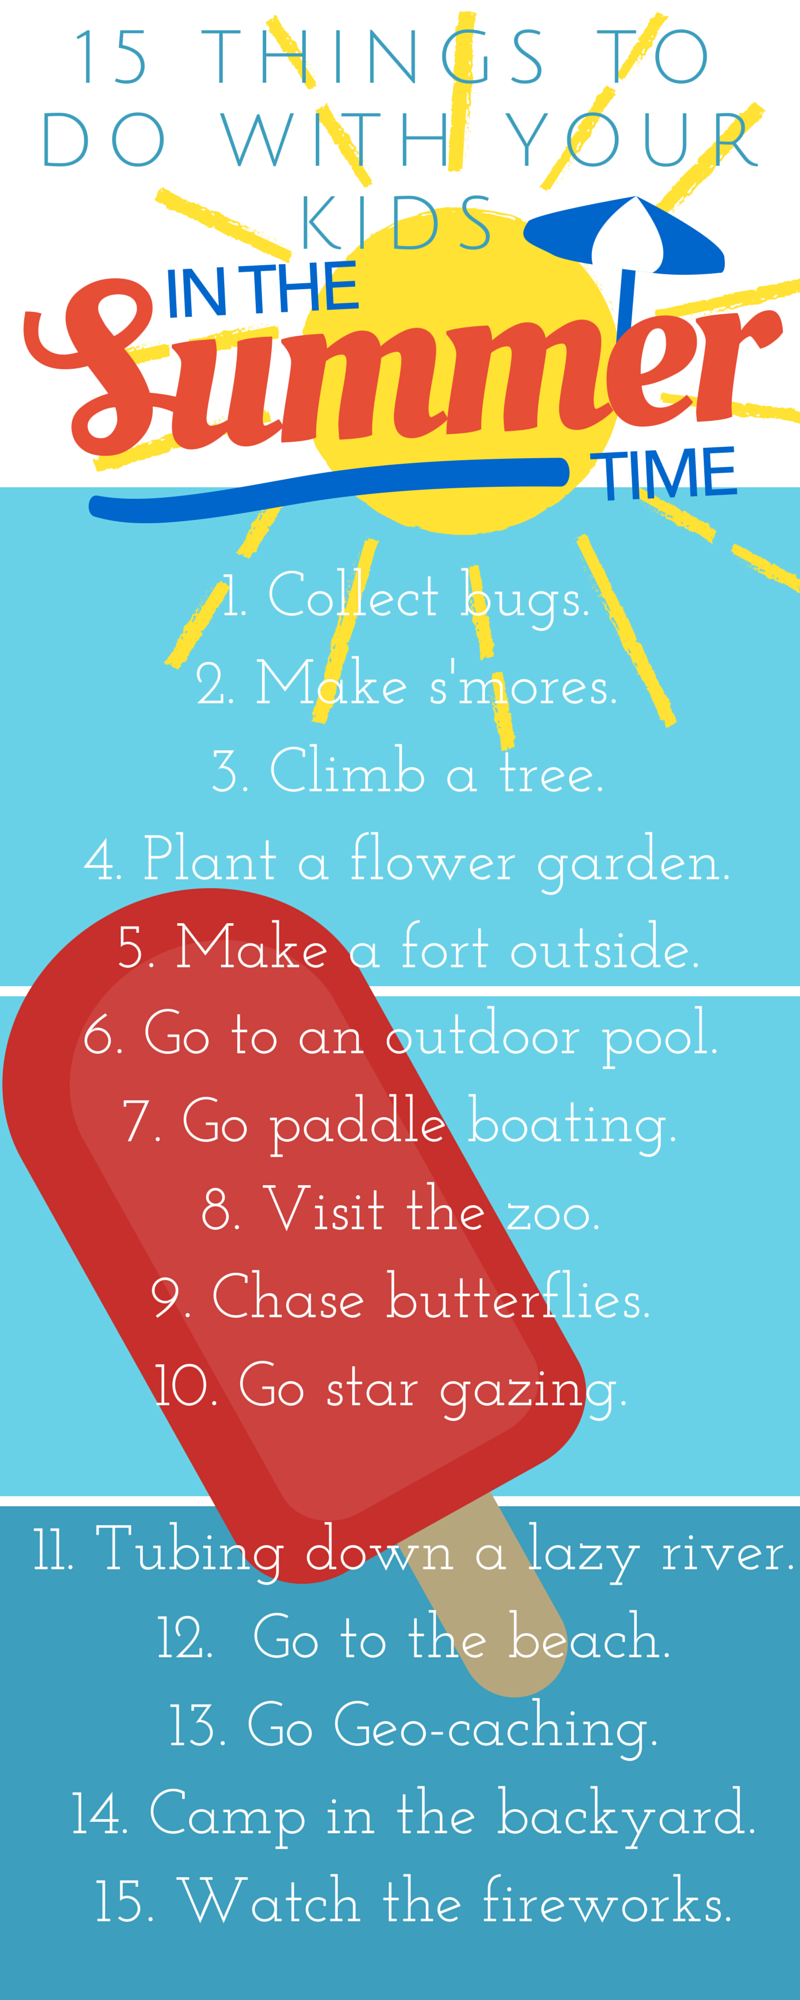 15 things to do with your kids in the Summer time